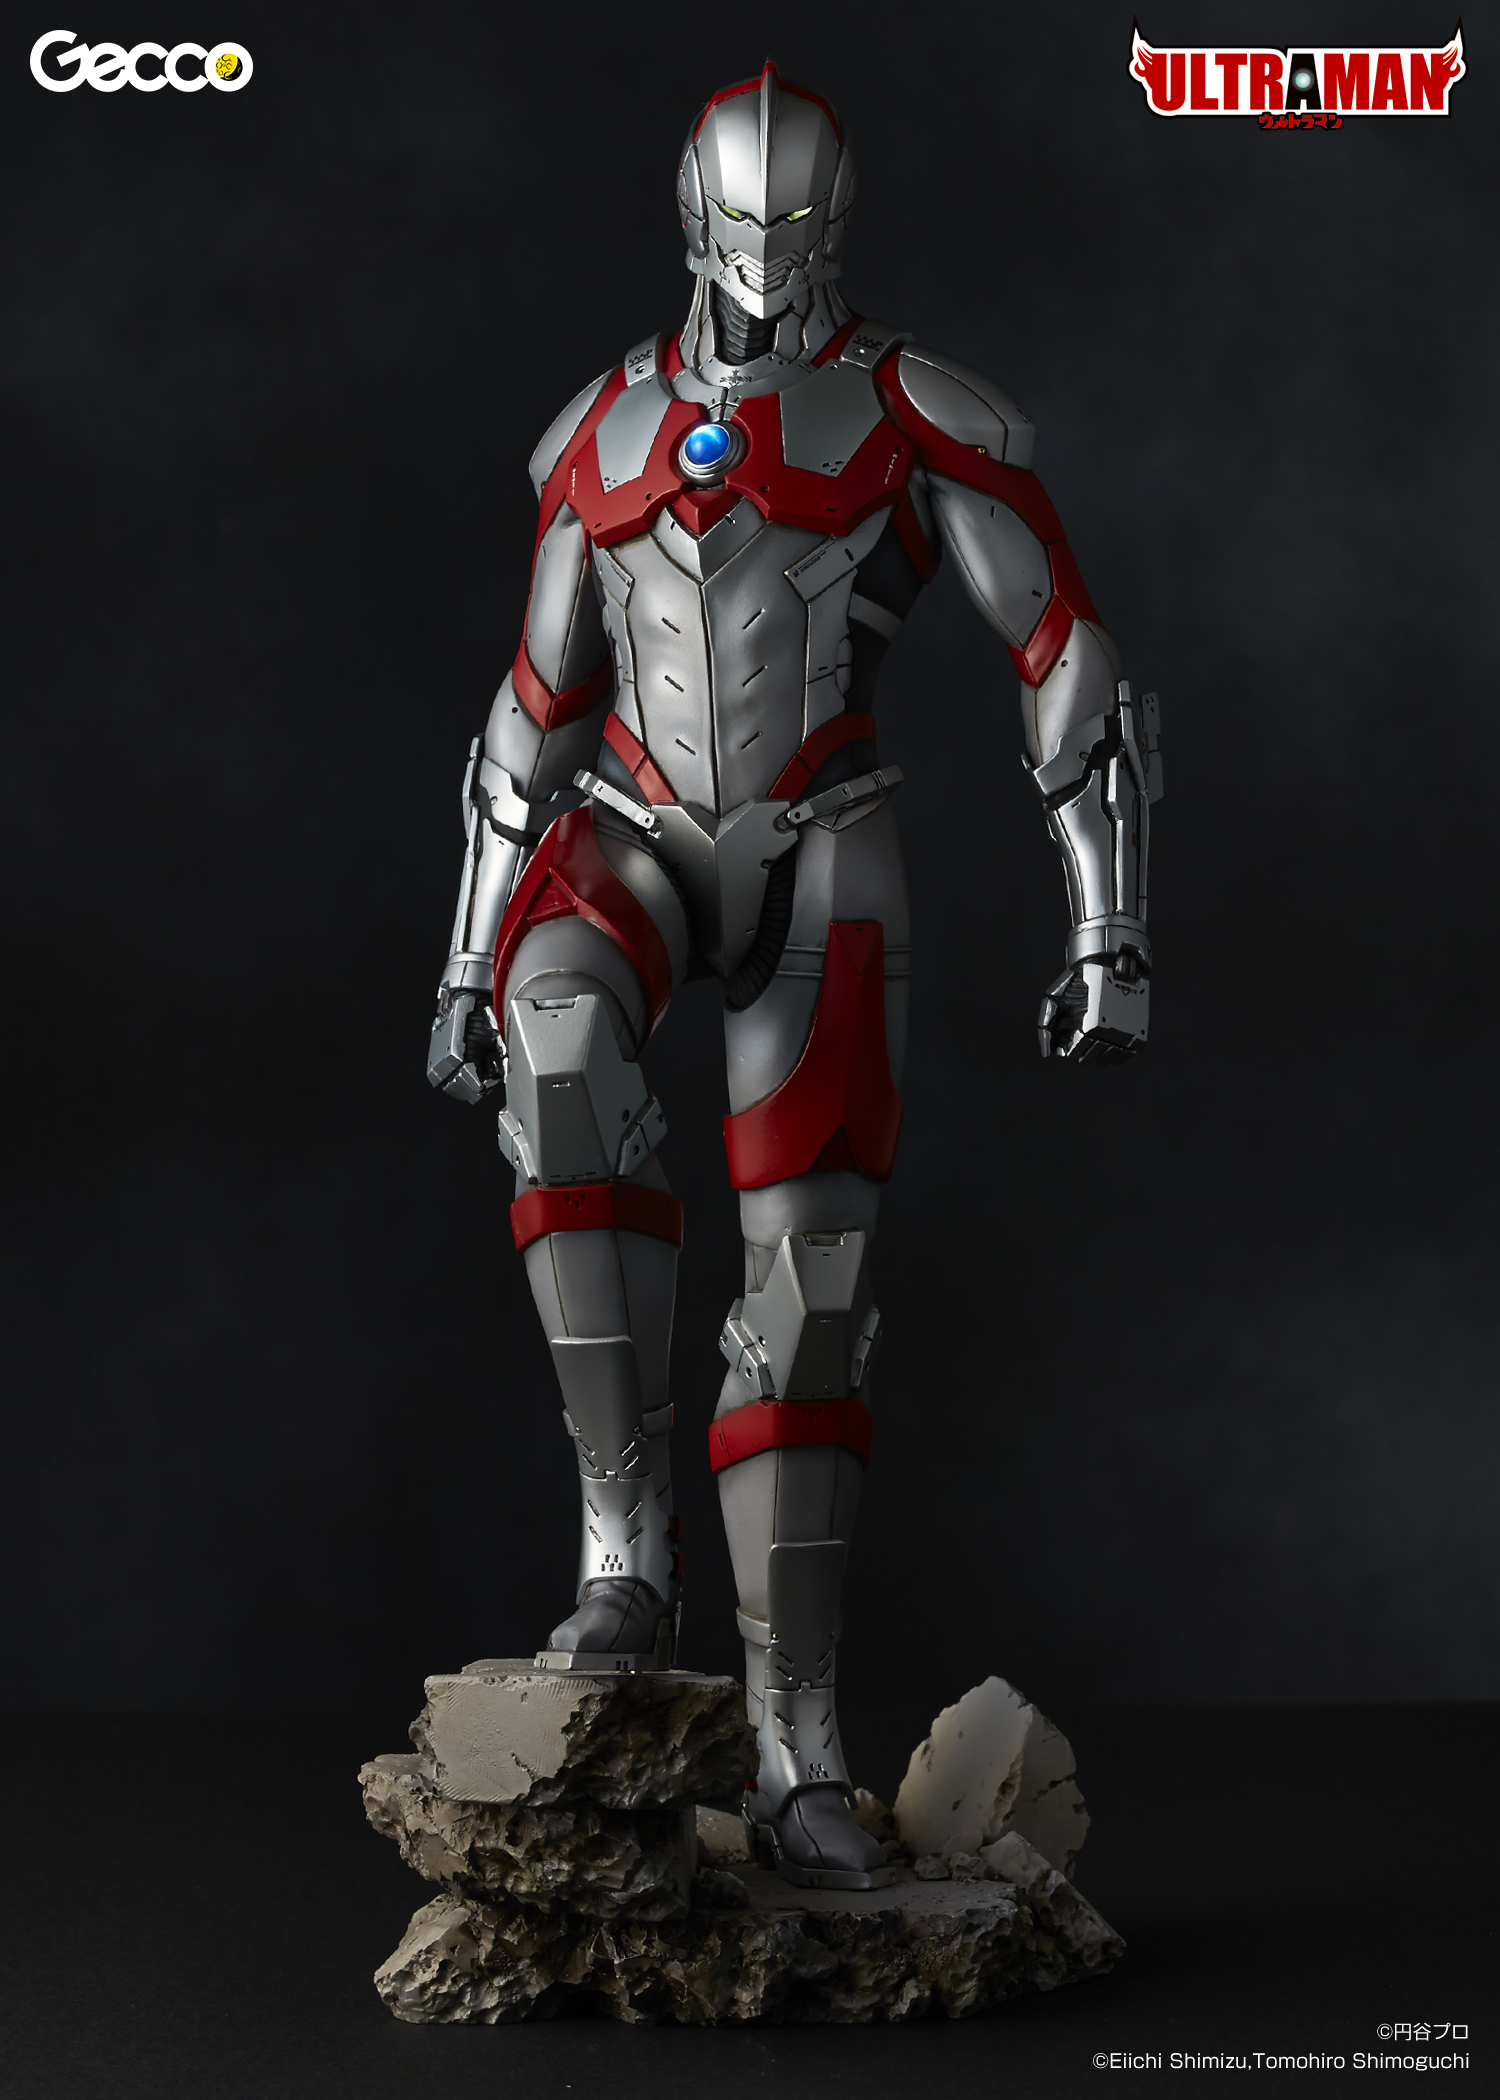 action figure insider ultraman 1 6 scale statue produced by gecco. Black Bedroom Furniture Sets. Home Design Ideas